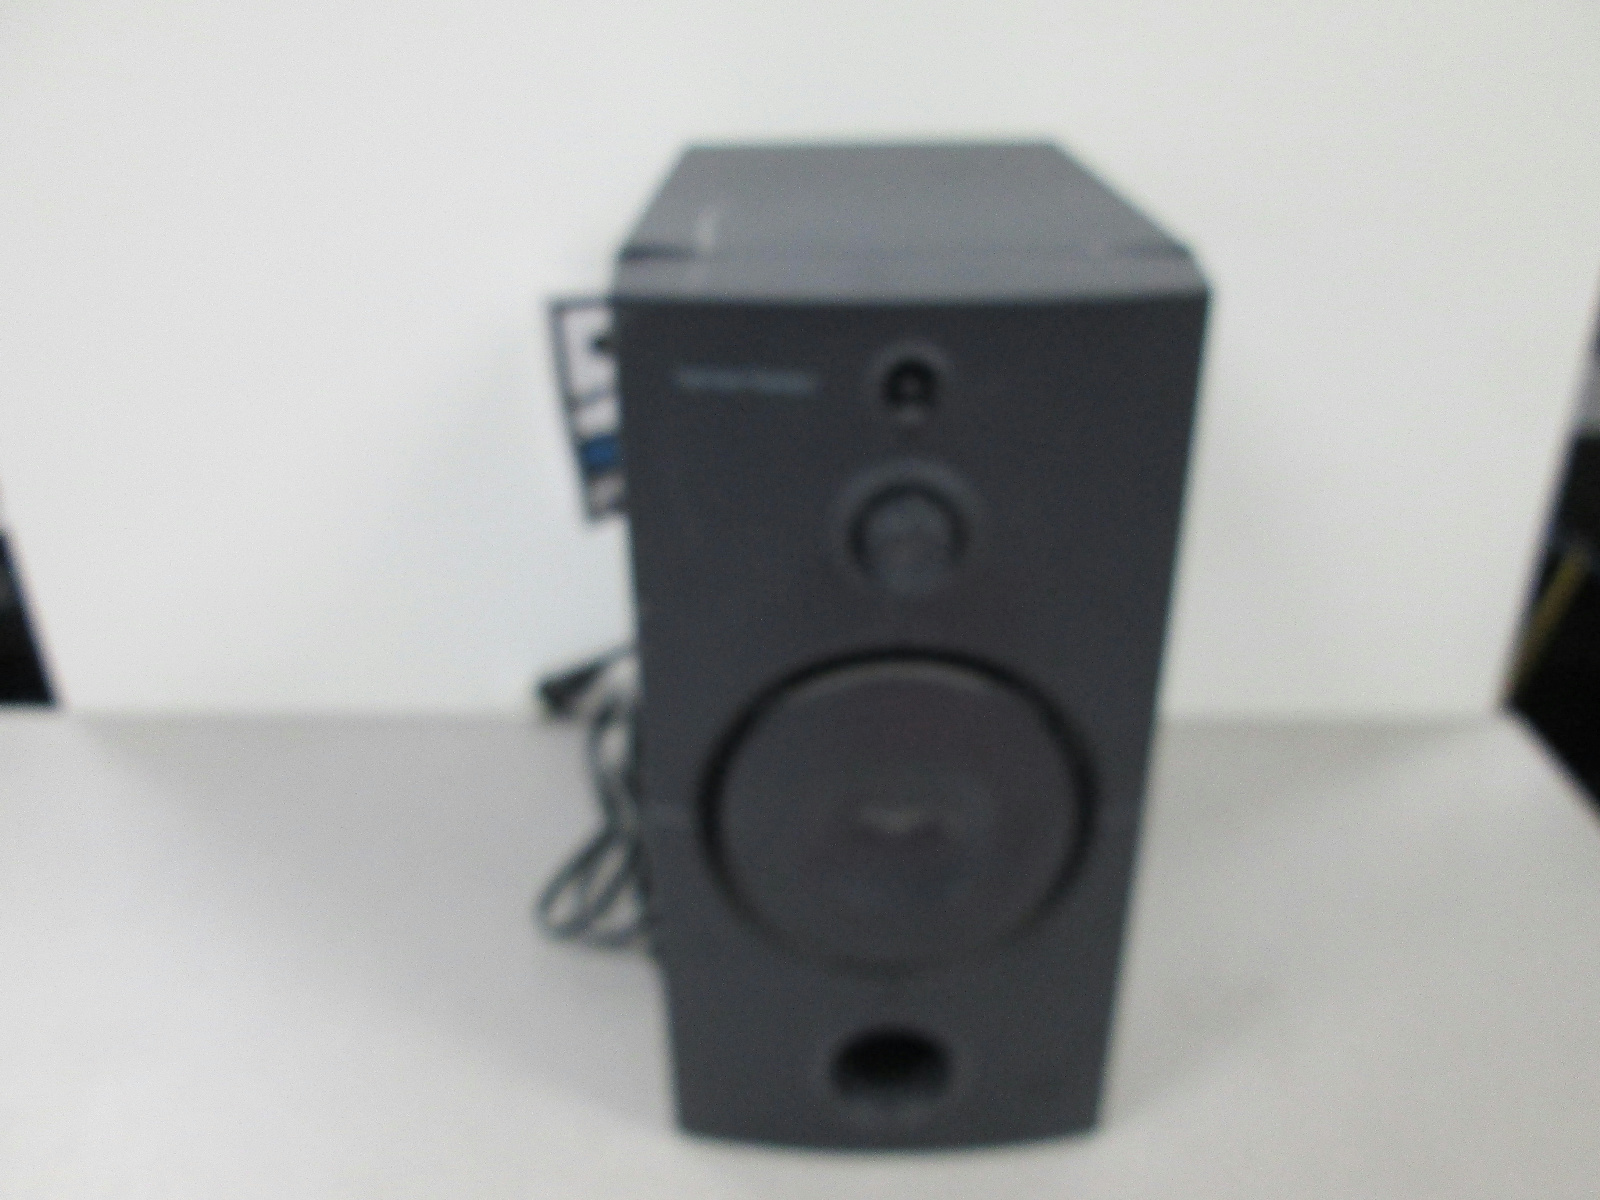 harman kardon model hk395 powered subwoofer ebay. Black Bedroom Furniture Sets. Home Design Ideas